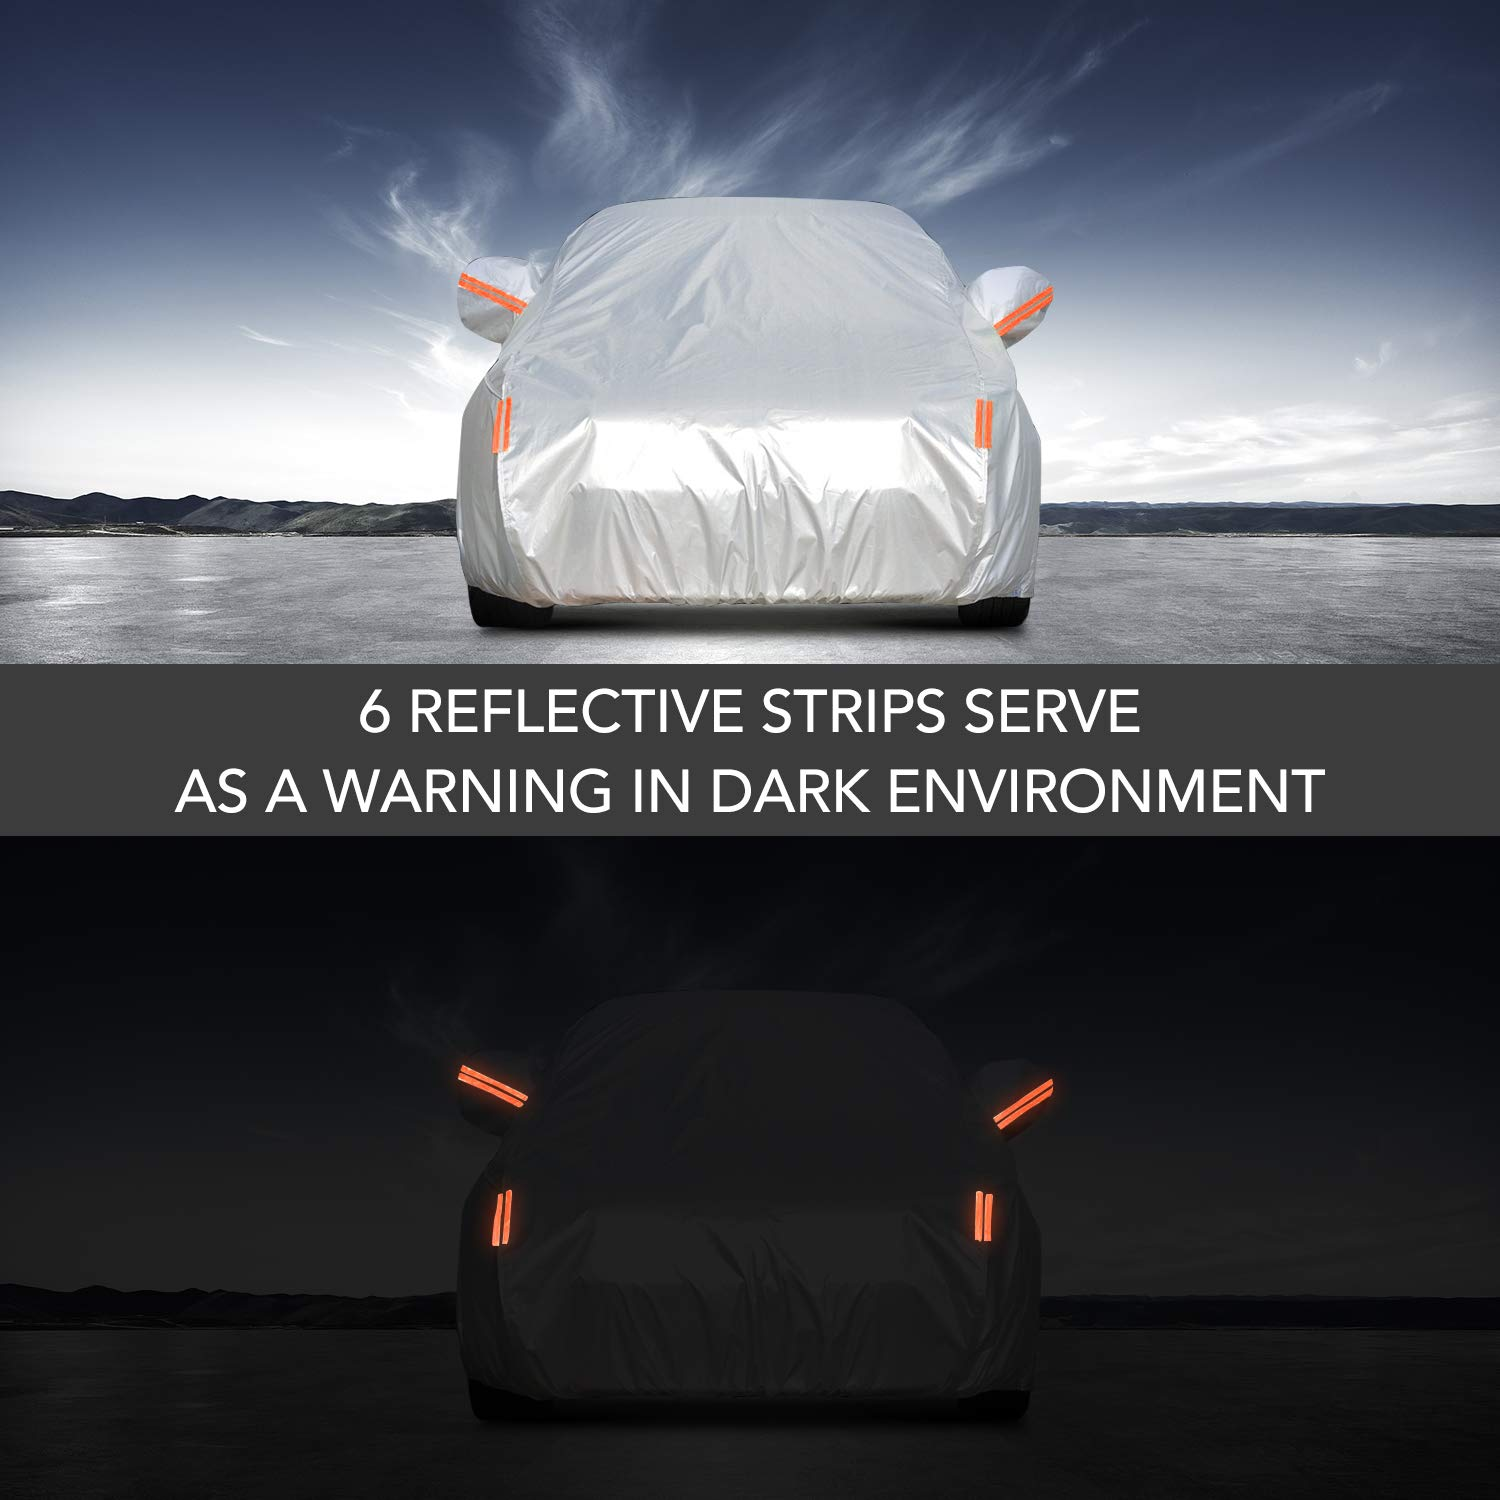 Car Cover Universal Full Car Covers with Zipper Door 6 Layers All Weather Protection Waterproof Windproof Dustproof Scratch Resistant Outdoor UV Protection Car Reflective Strips for Sedan Wagon Use